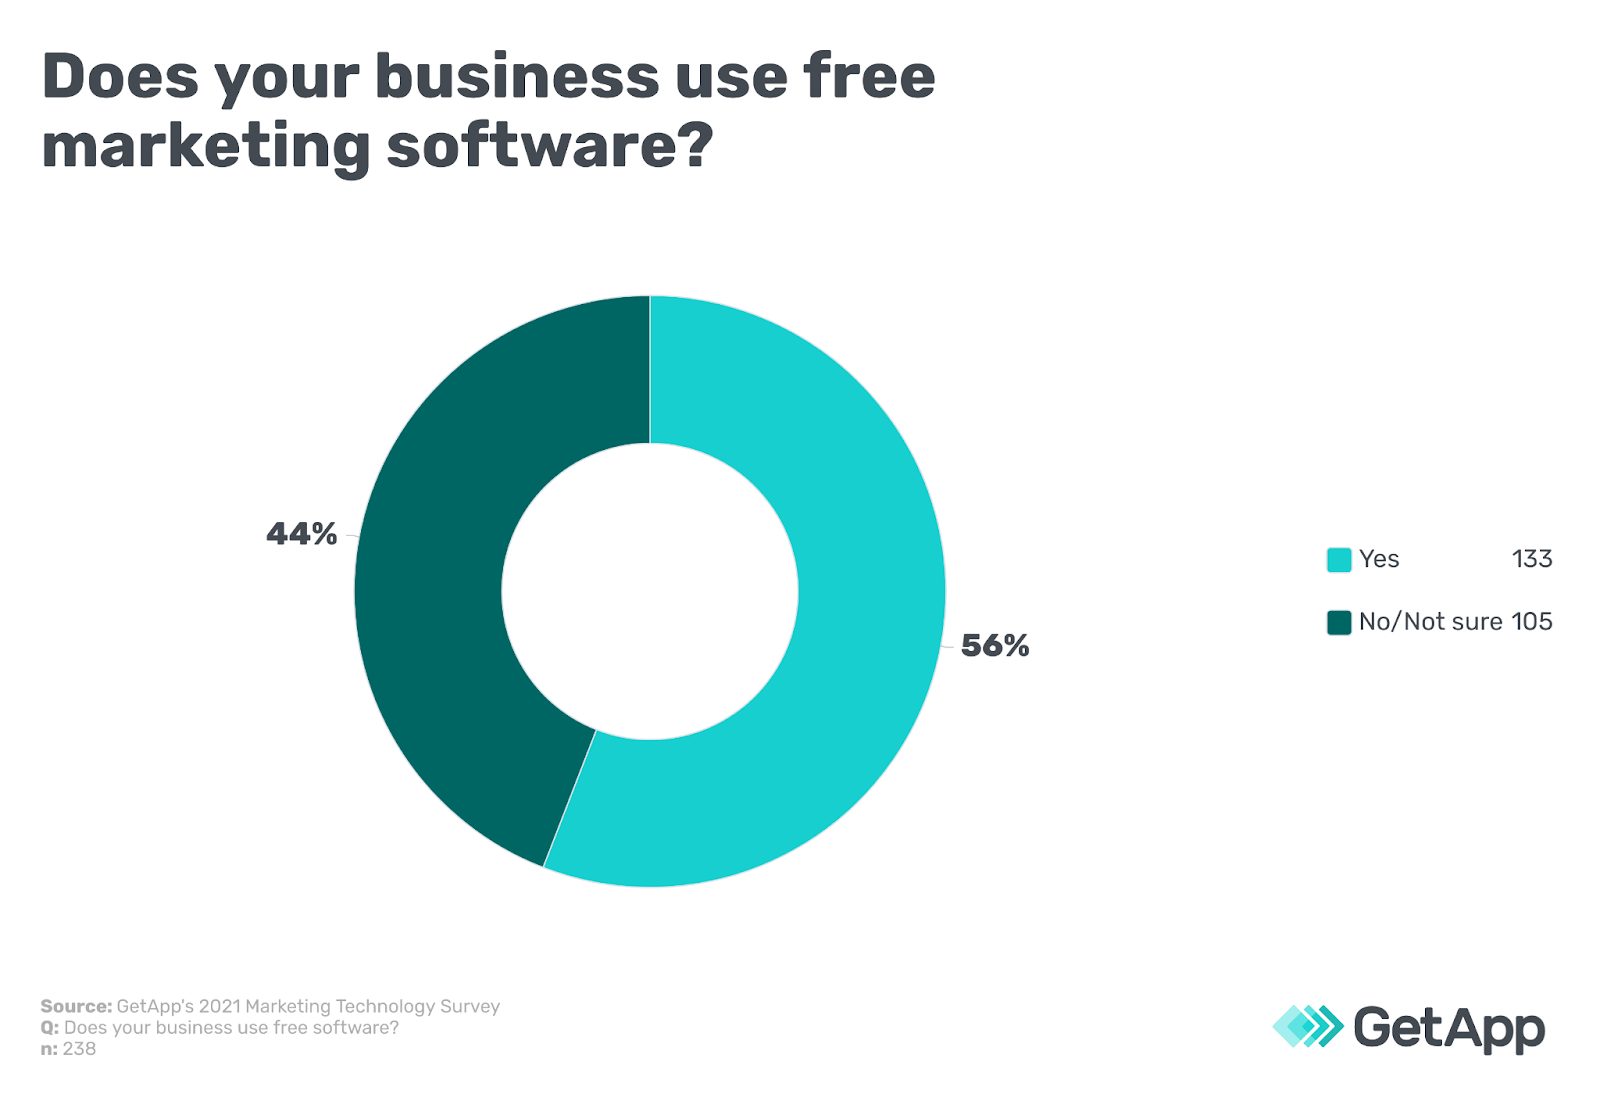 Does you business use free marketing software?